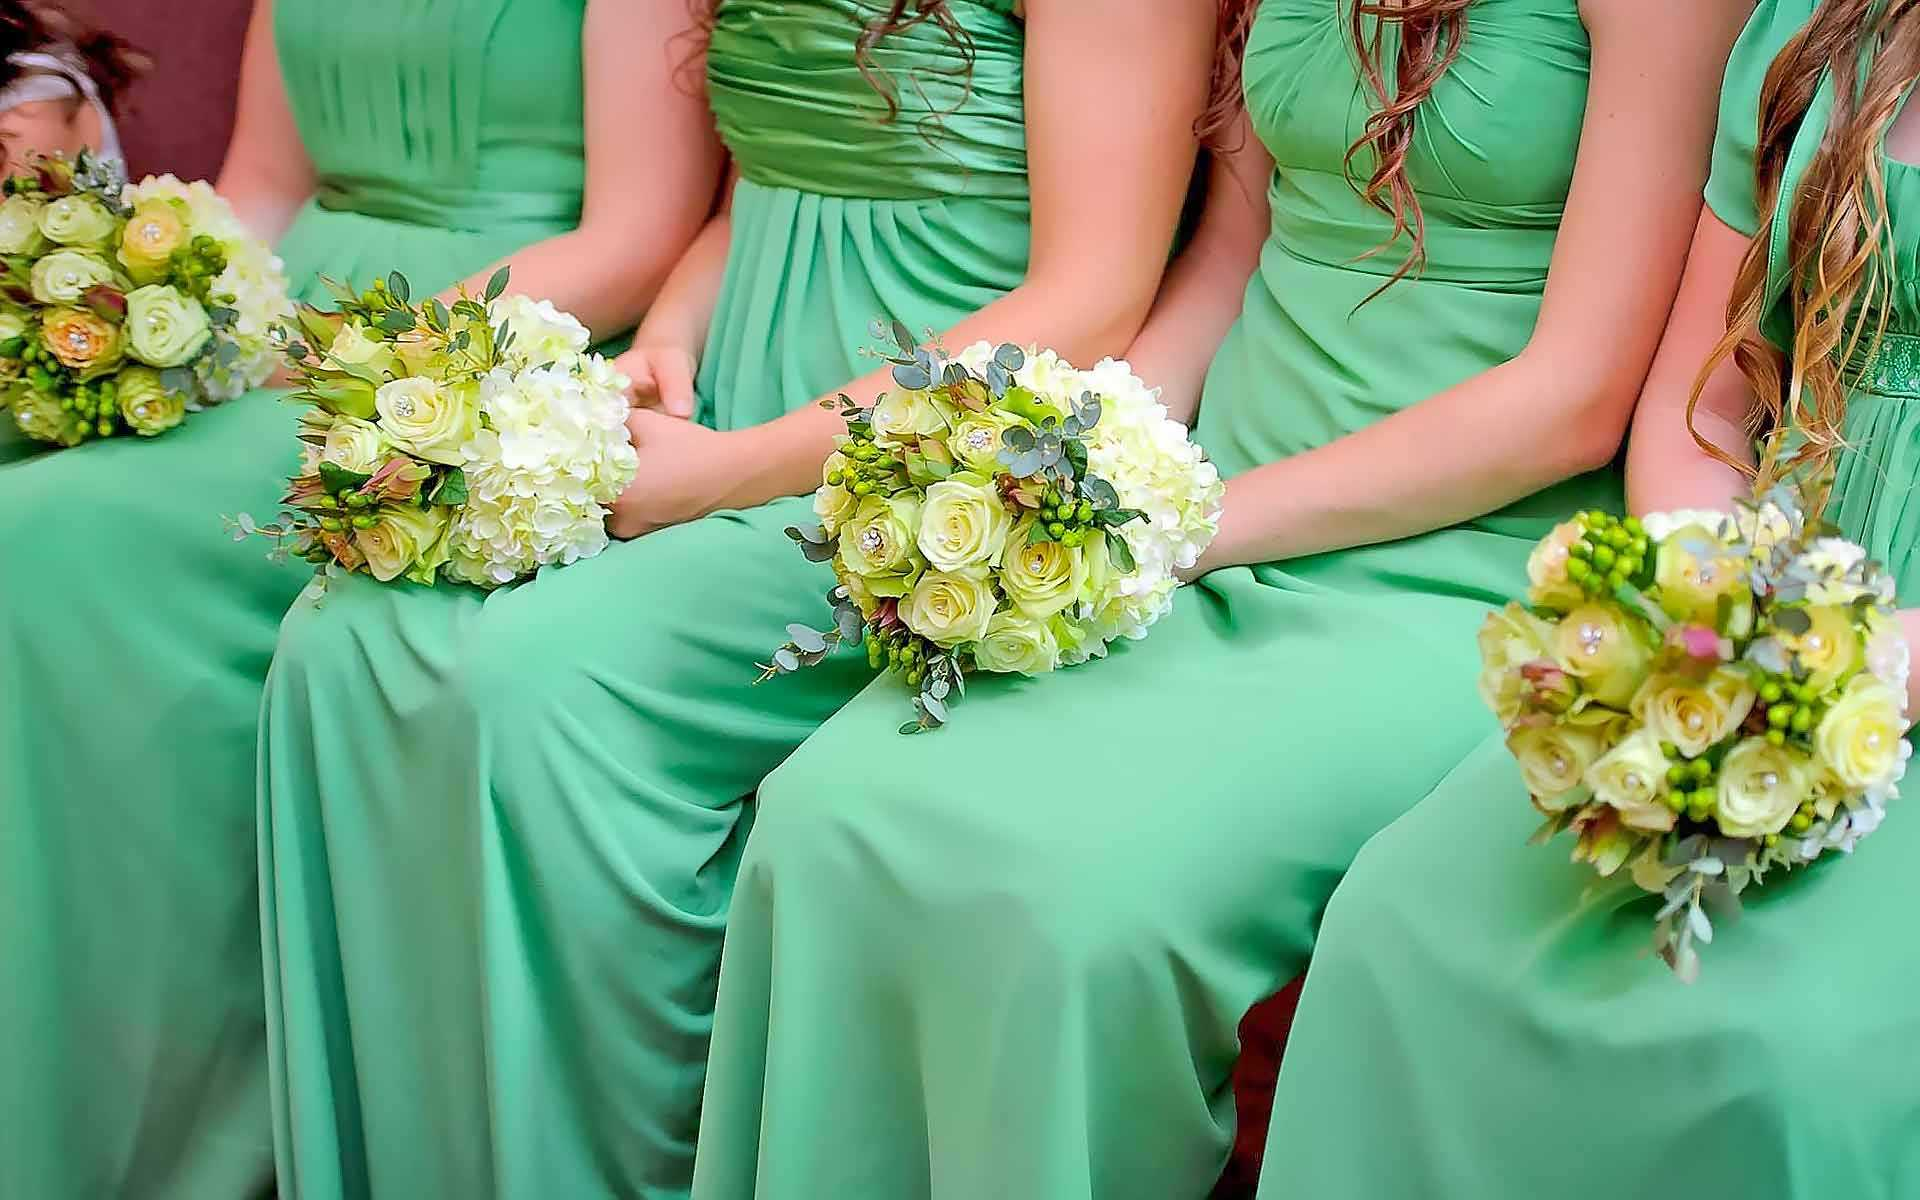 Ladies-In-Emerald-Each-Dressed-Up-Holding-Their-Wedding-Bouquets